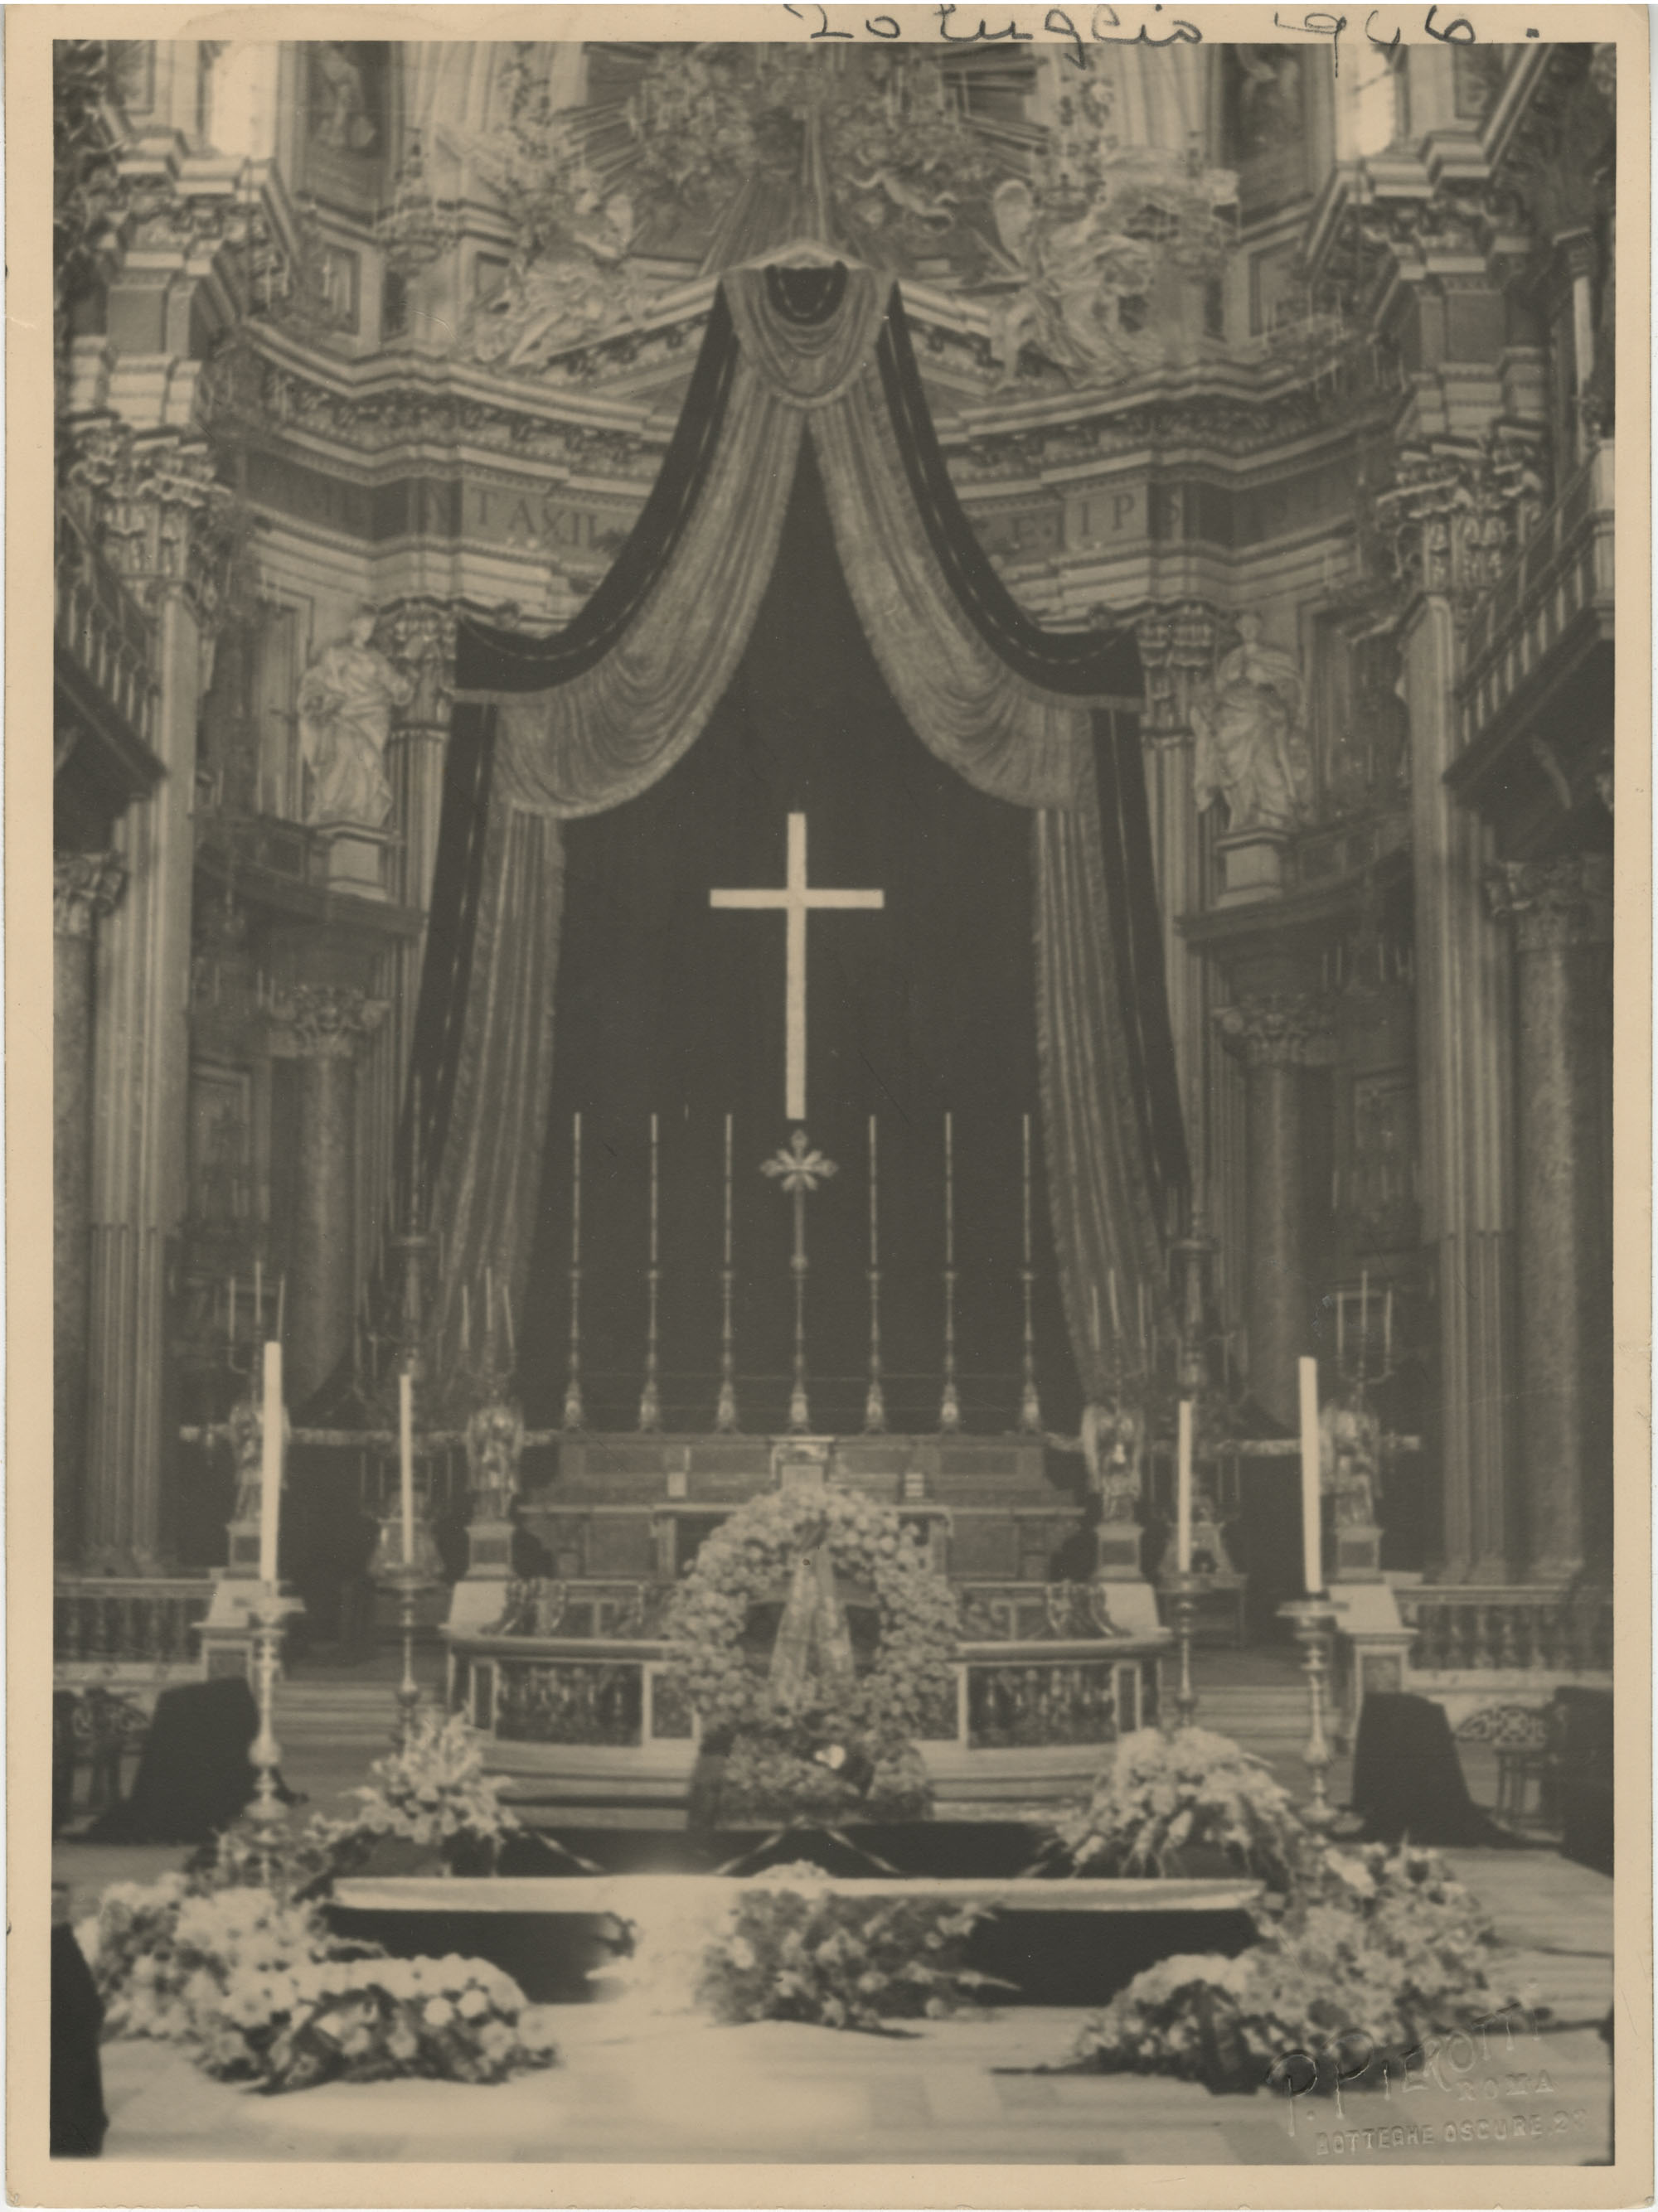 Interior of a cathedral decorated for Mario Pansa's funeral, Photograph 2